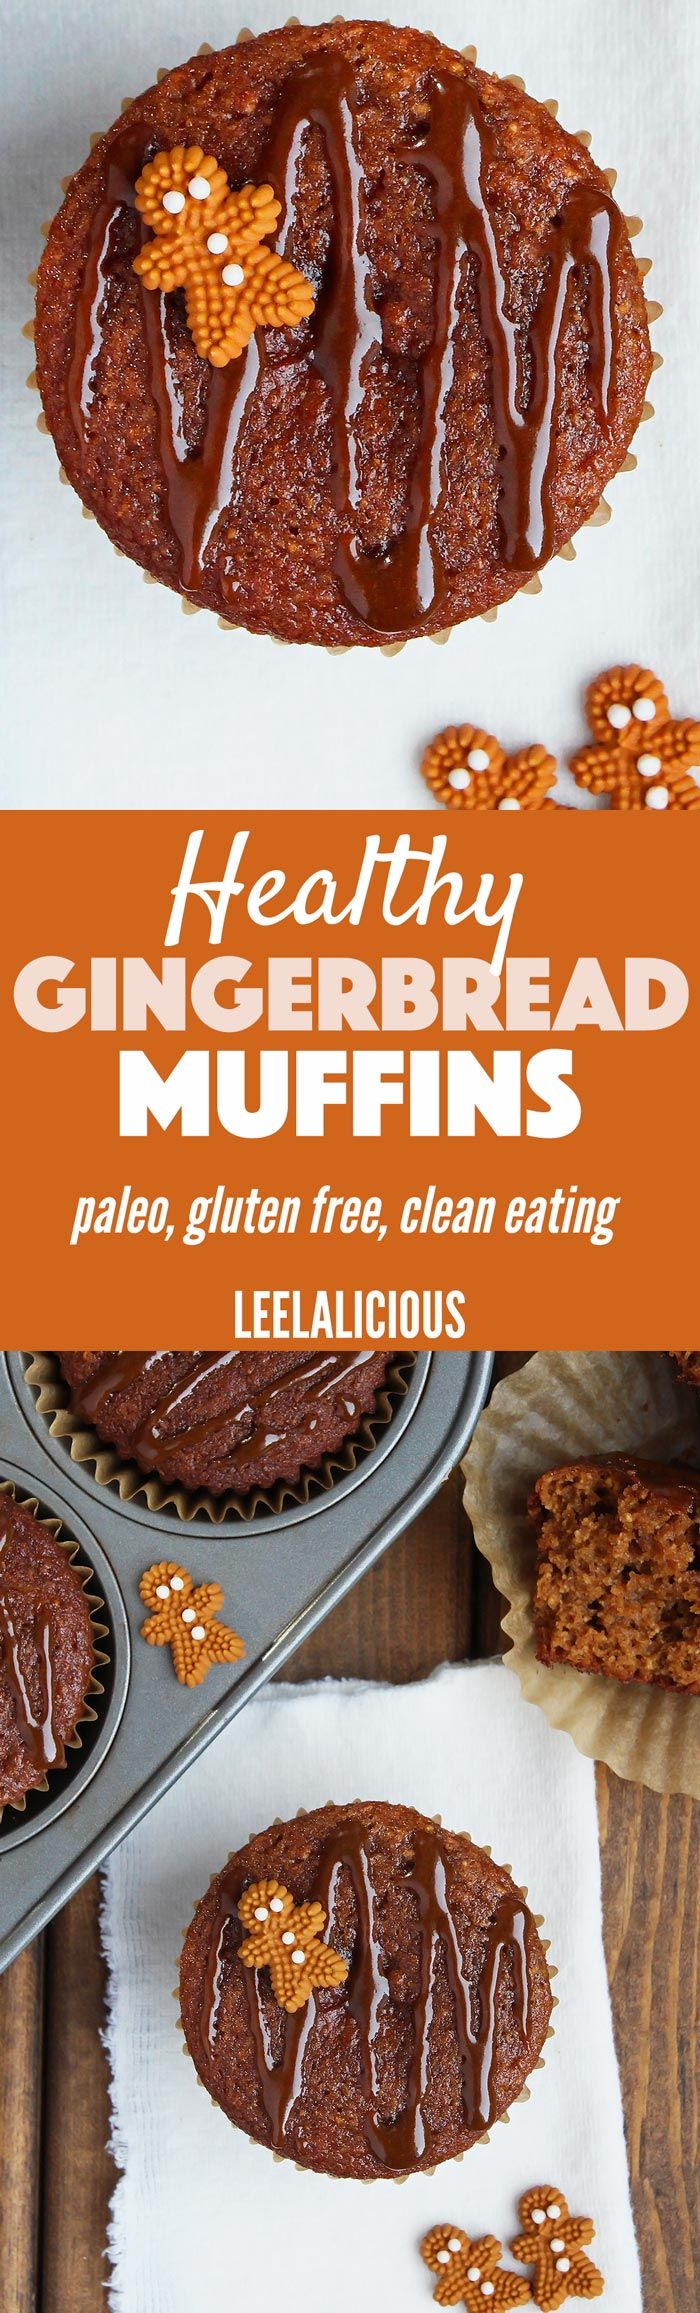 These spiced Paleo Gingerbread Muffins are made from coconut flour. Healthy gingerbread muffins are a delicious gluten free holiday treat.